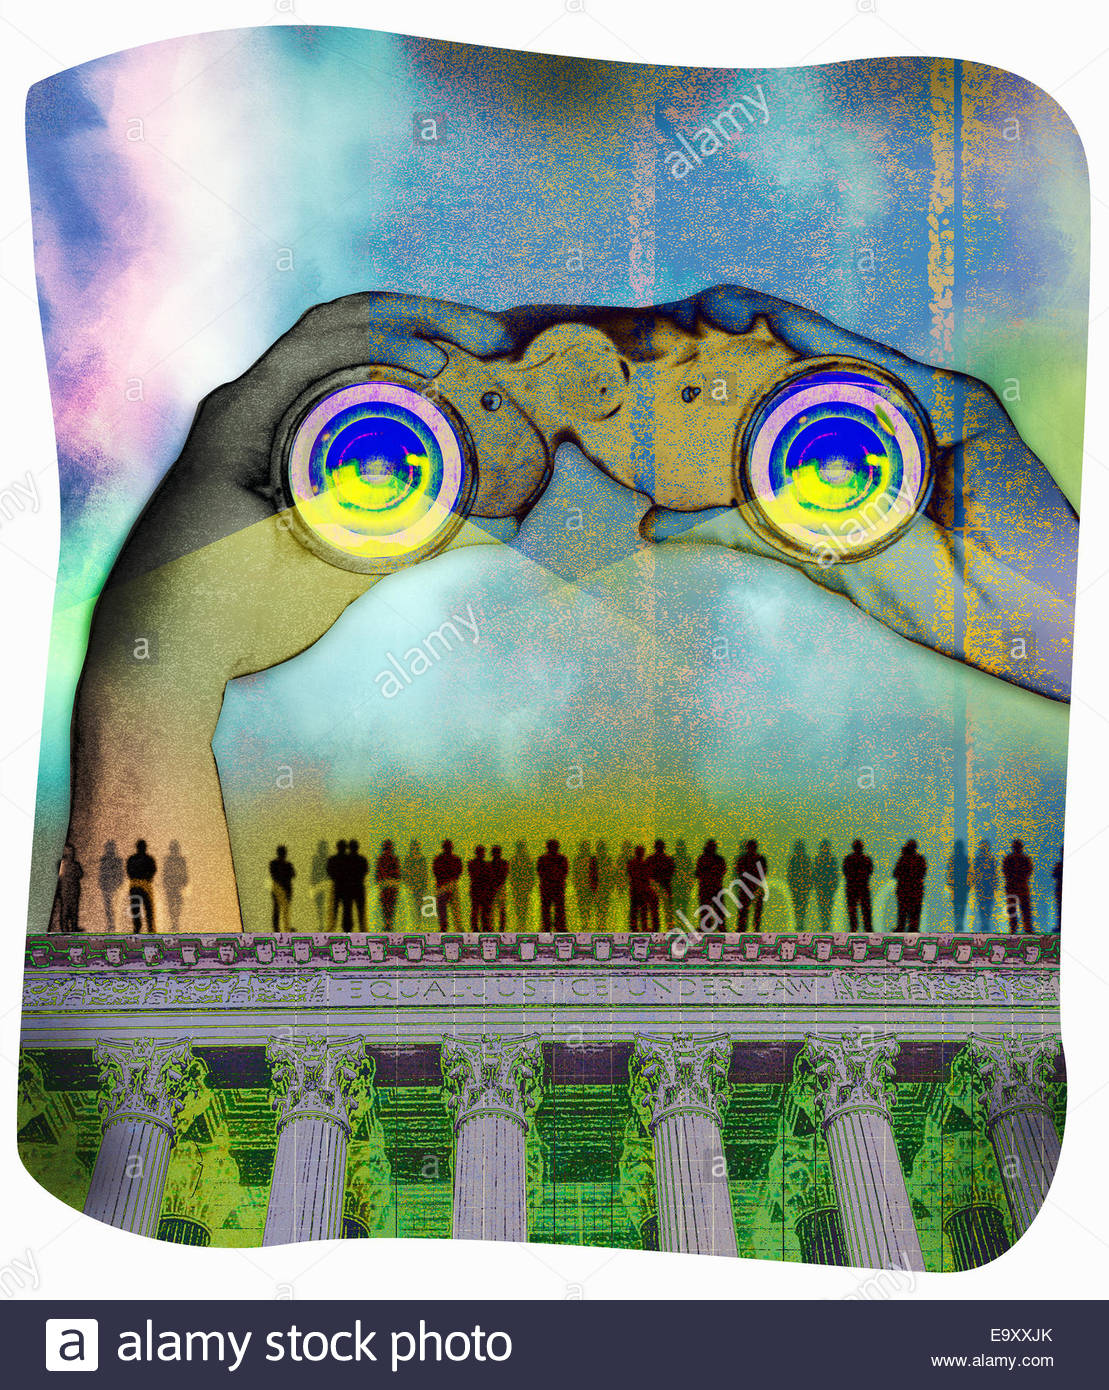 Hands holding large binoculars over people standing on top of Supreme Court building Stock Photo